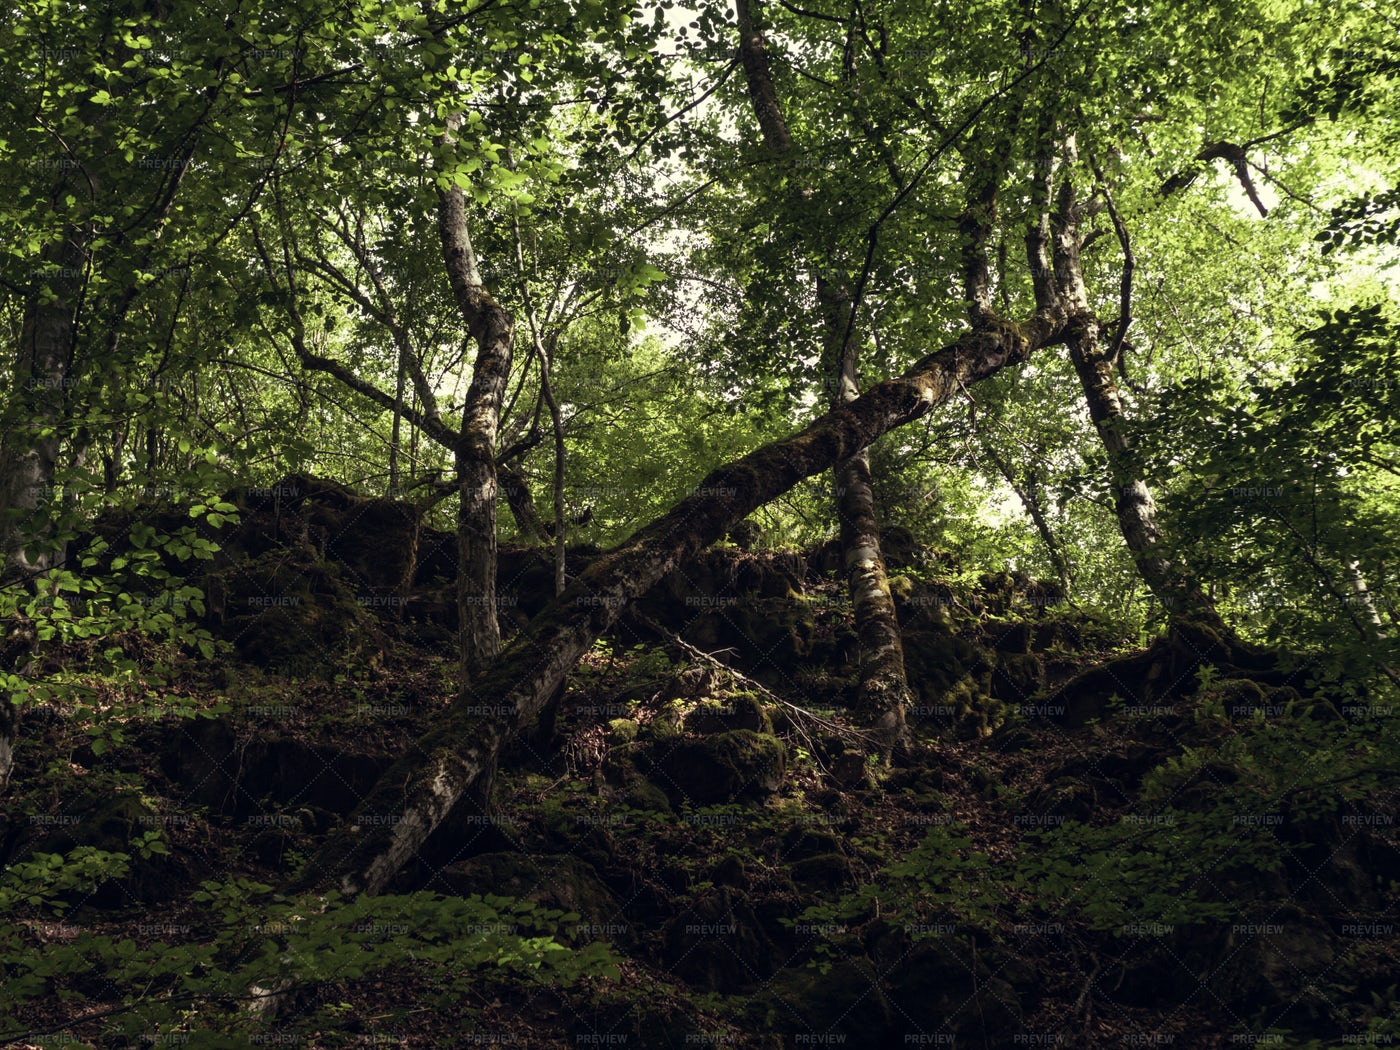 Fallen Tree In A Forest: Stock Photos